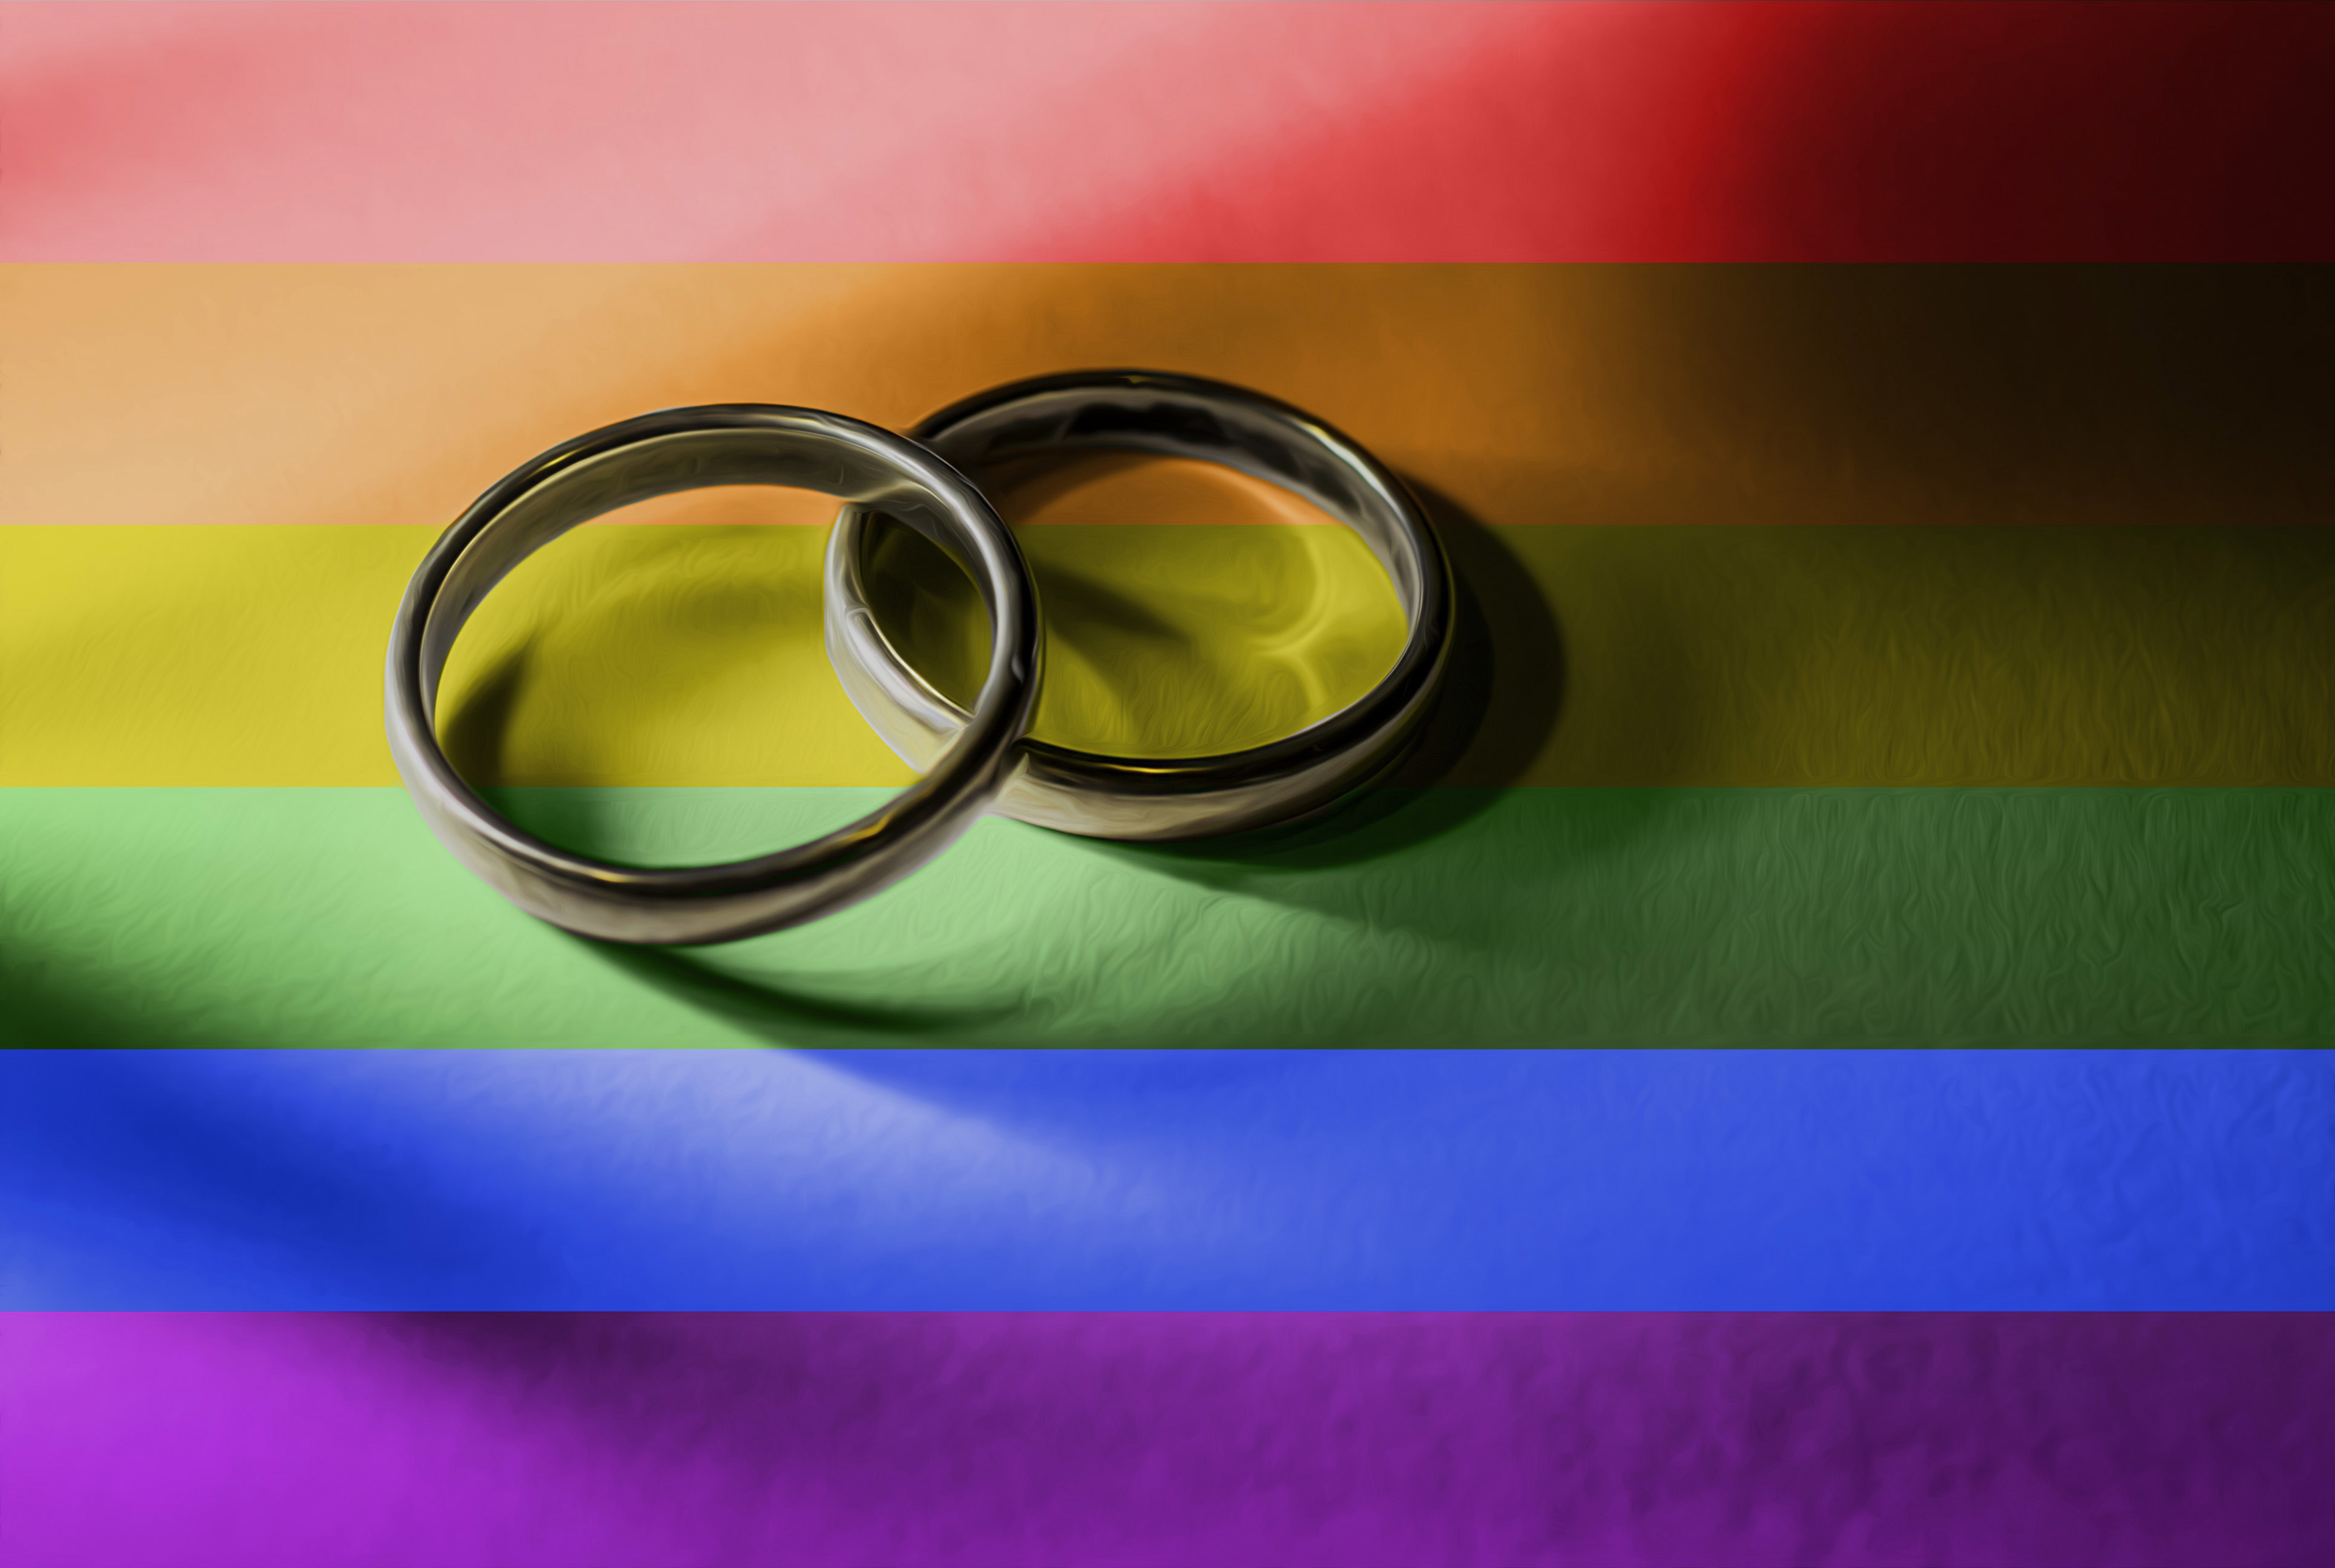 Texas Supreme Court agrees to review same-sex marriage case